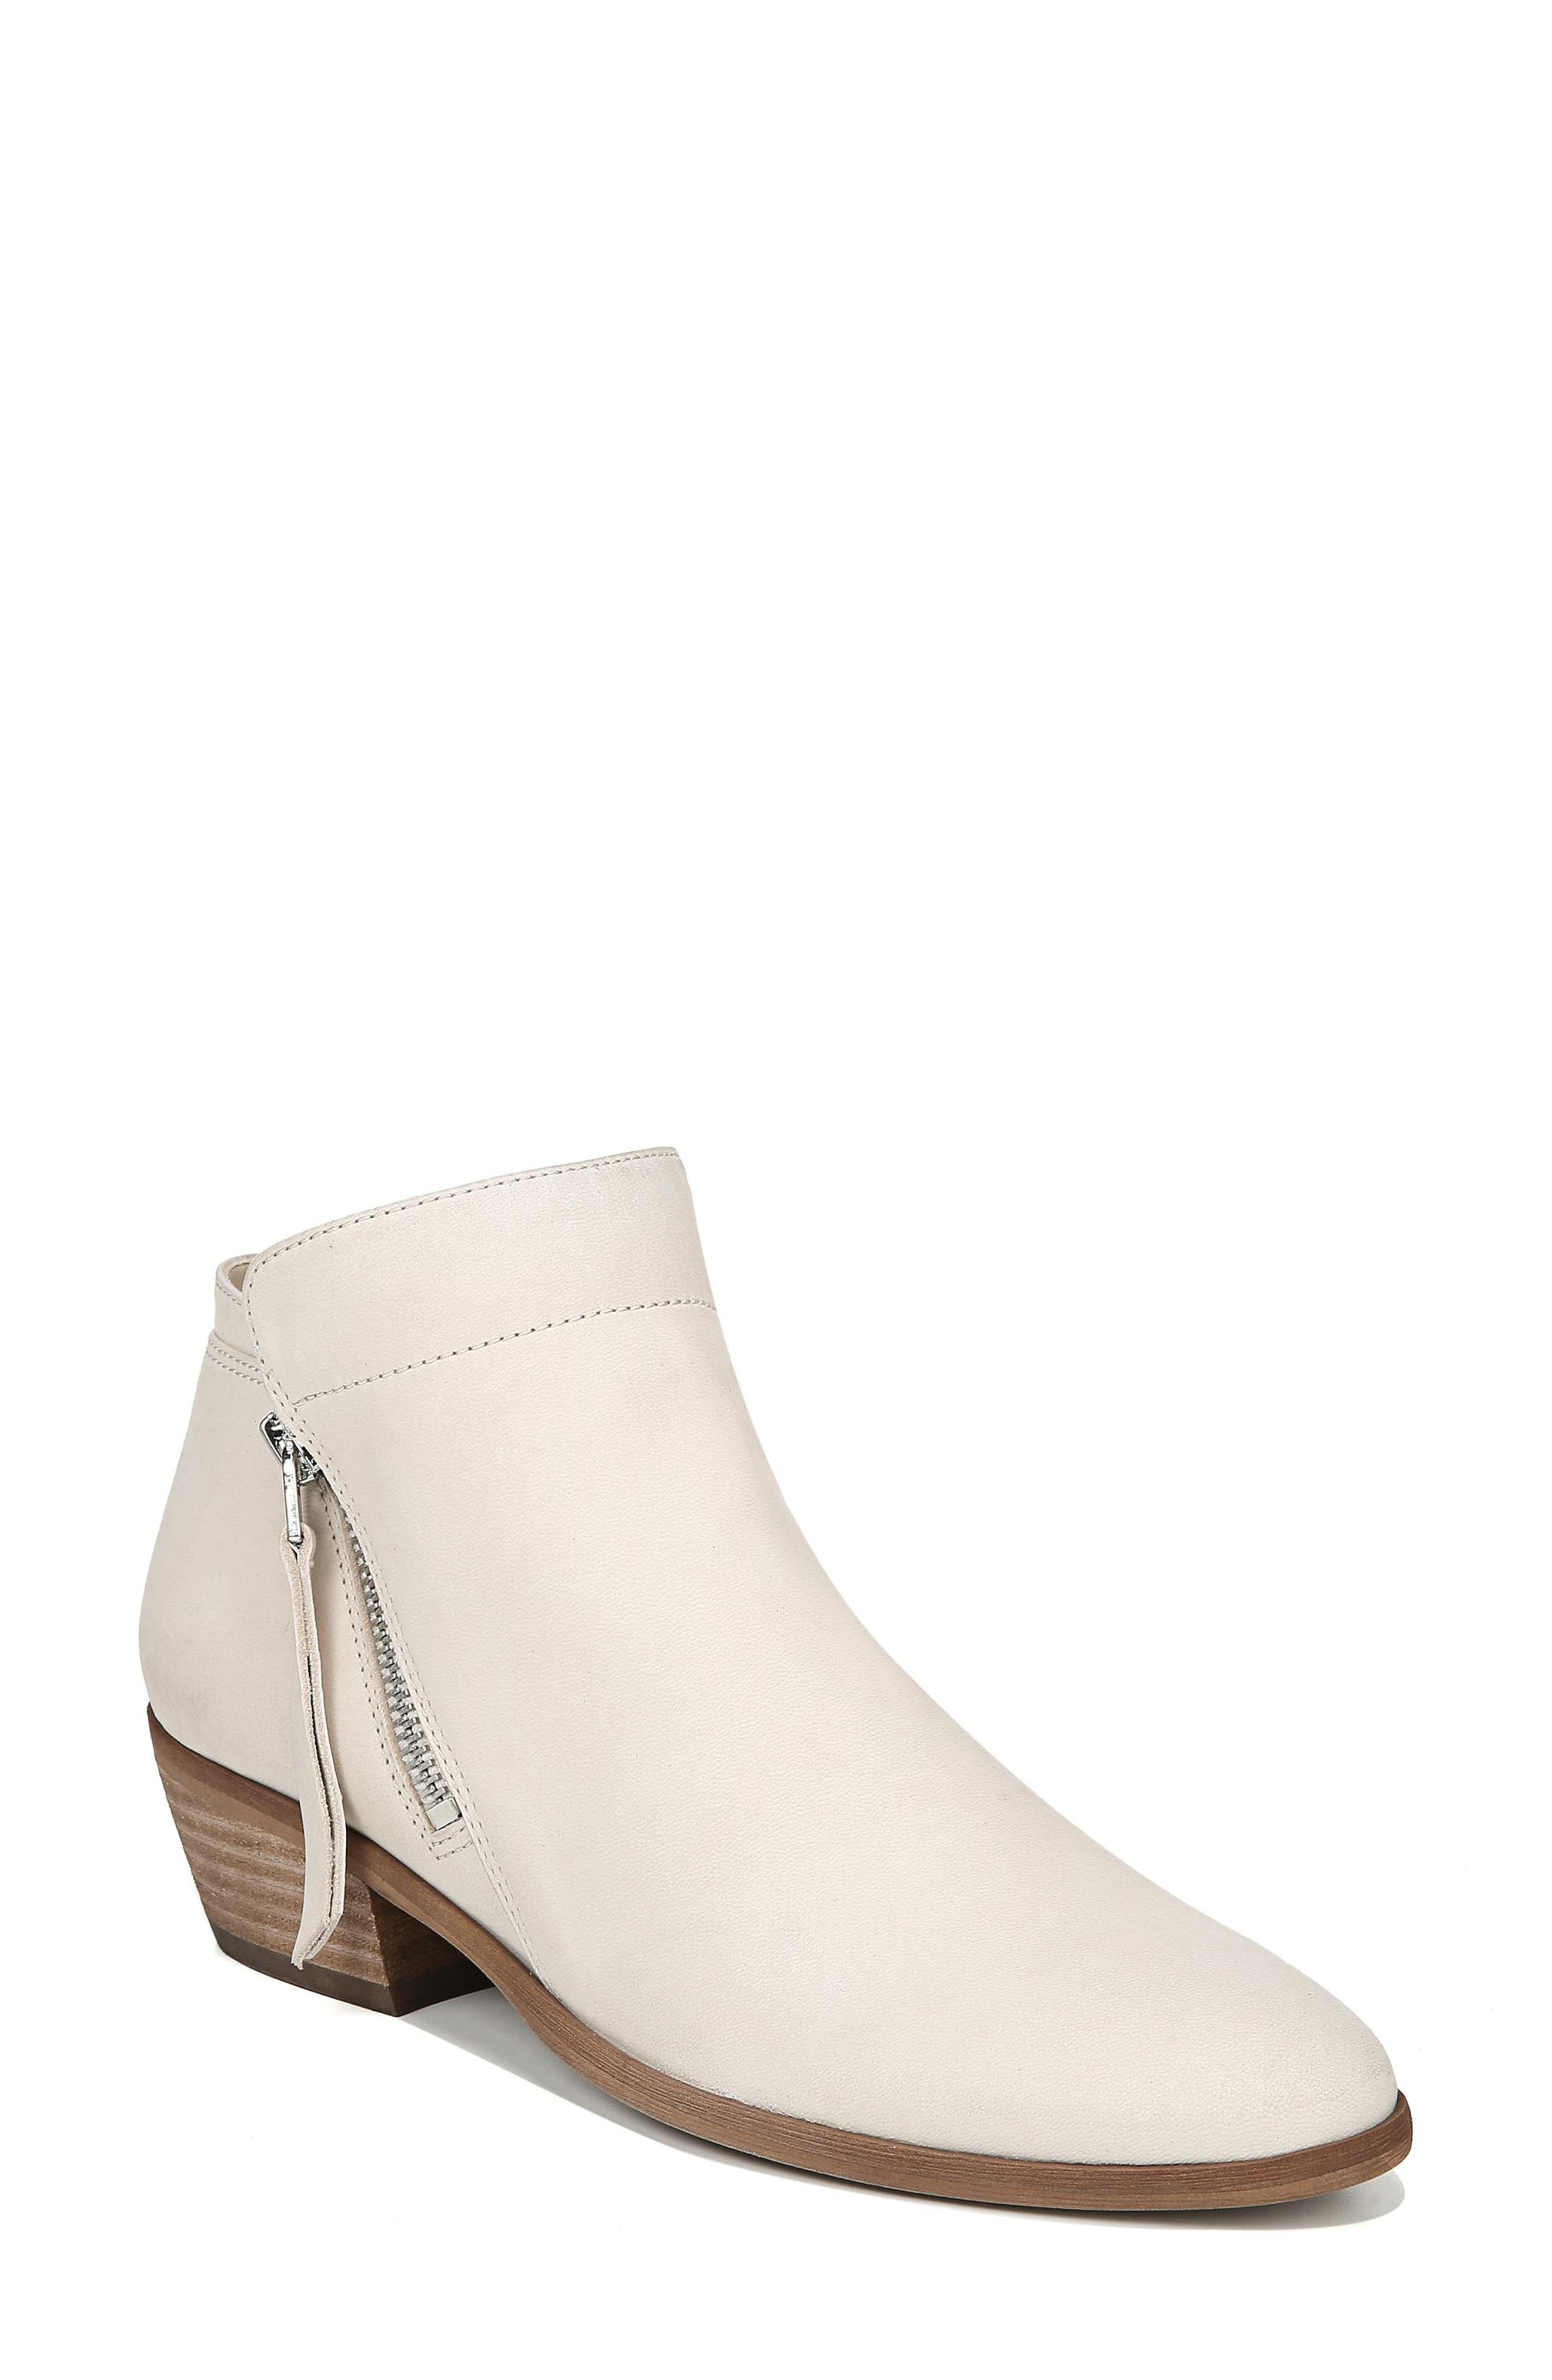 Sam Edelman Packer Bootie- White